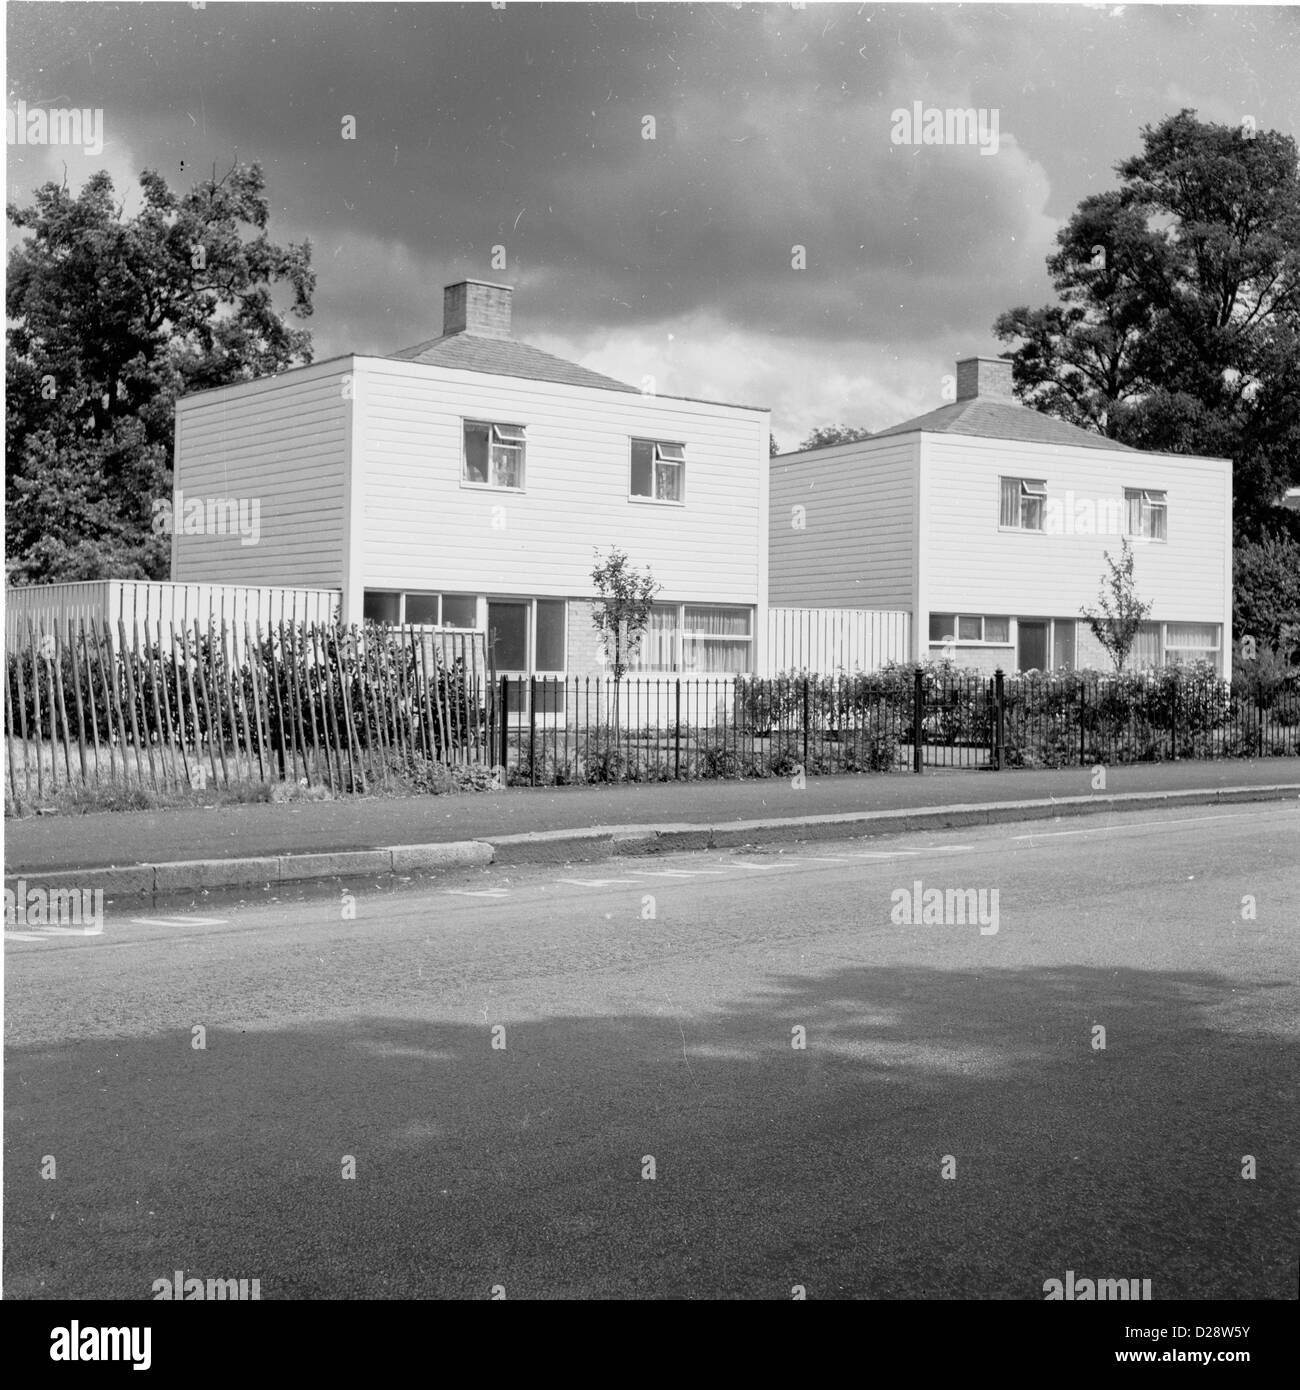 London1960s Two Newly Built Modern Square Shaped Houses